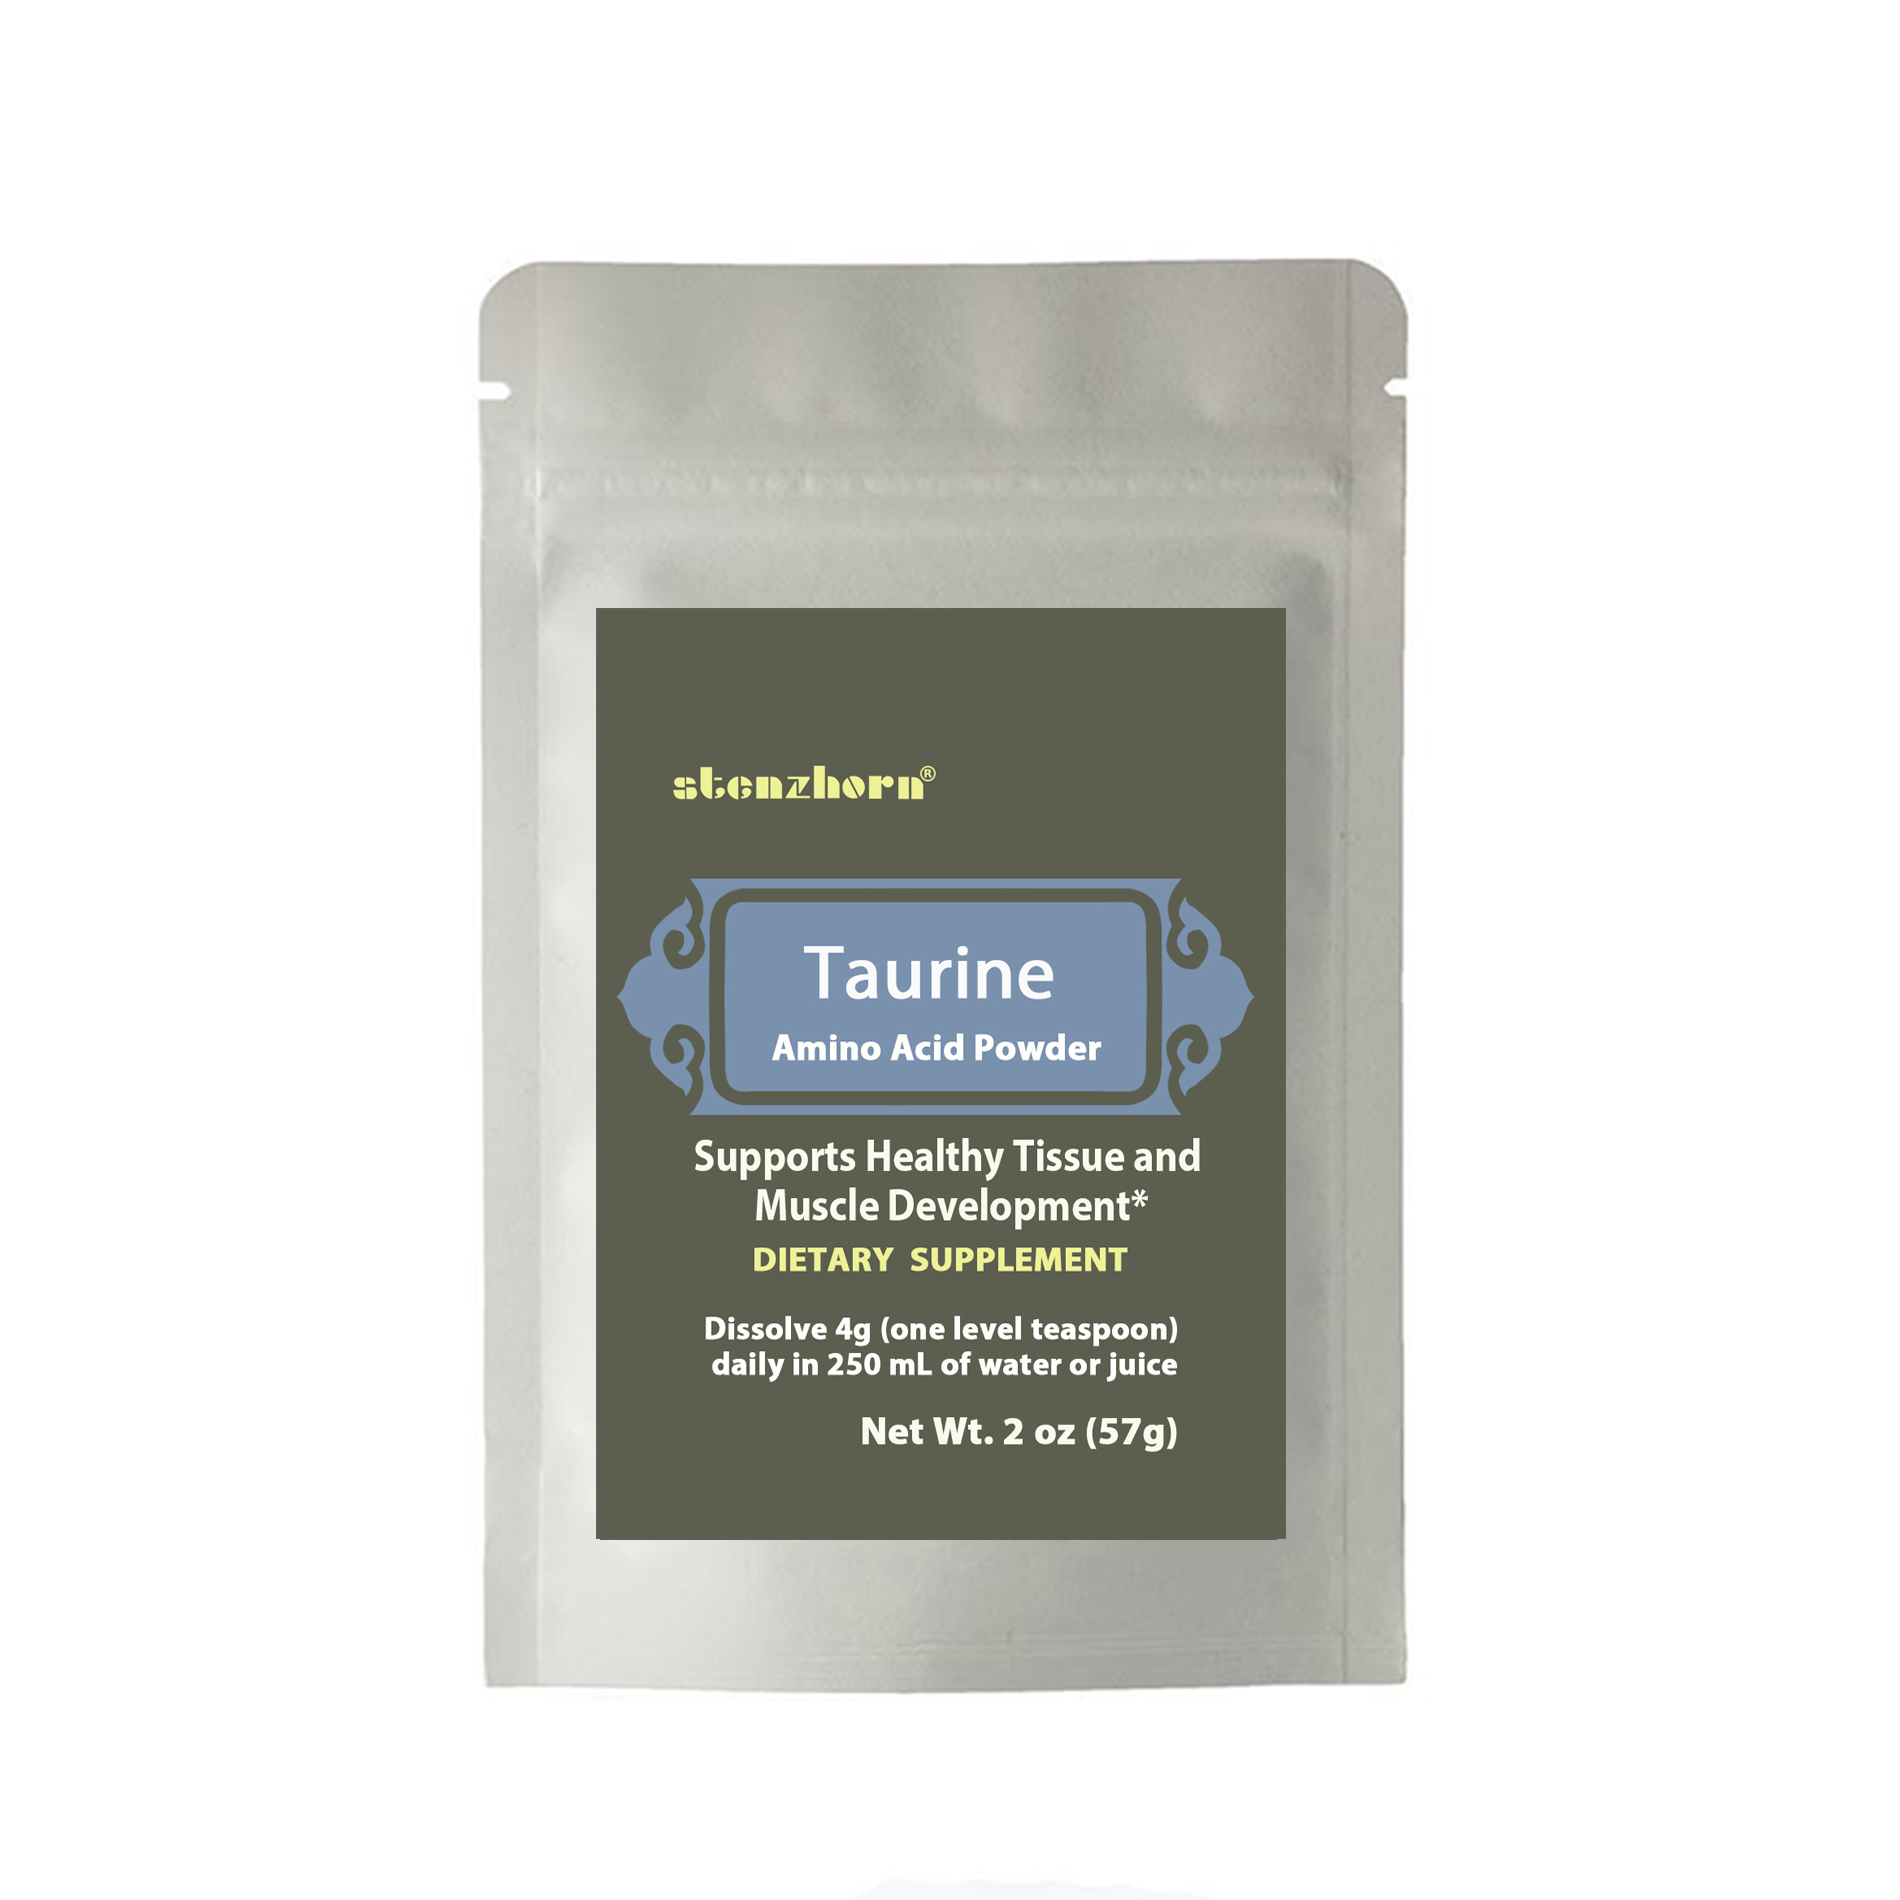 Taurine  Amino Acid Powder 2oz Supports Healthy Tissue And Muscle Development*